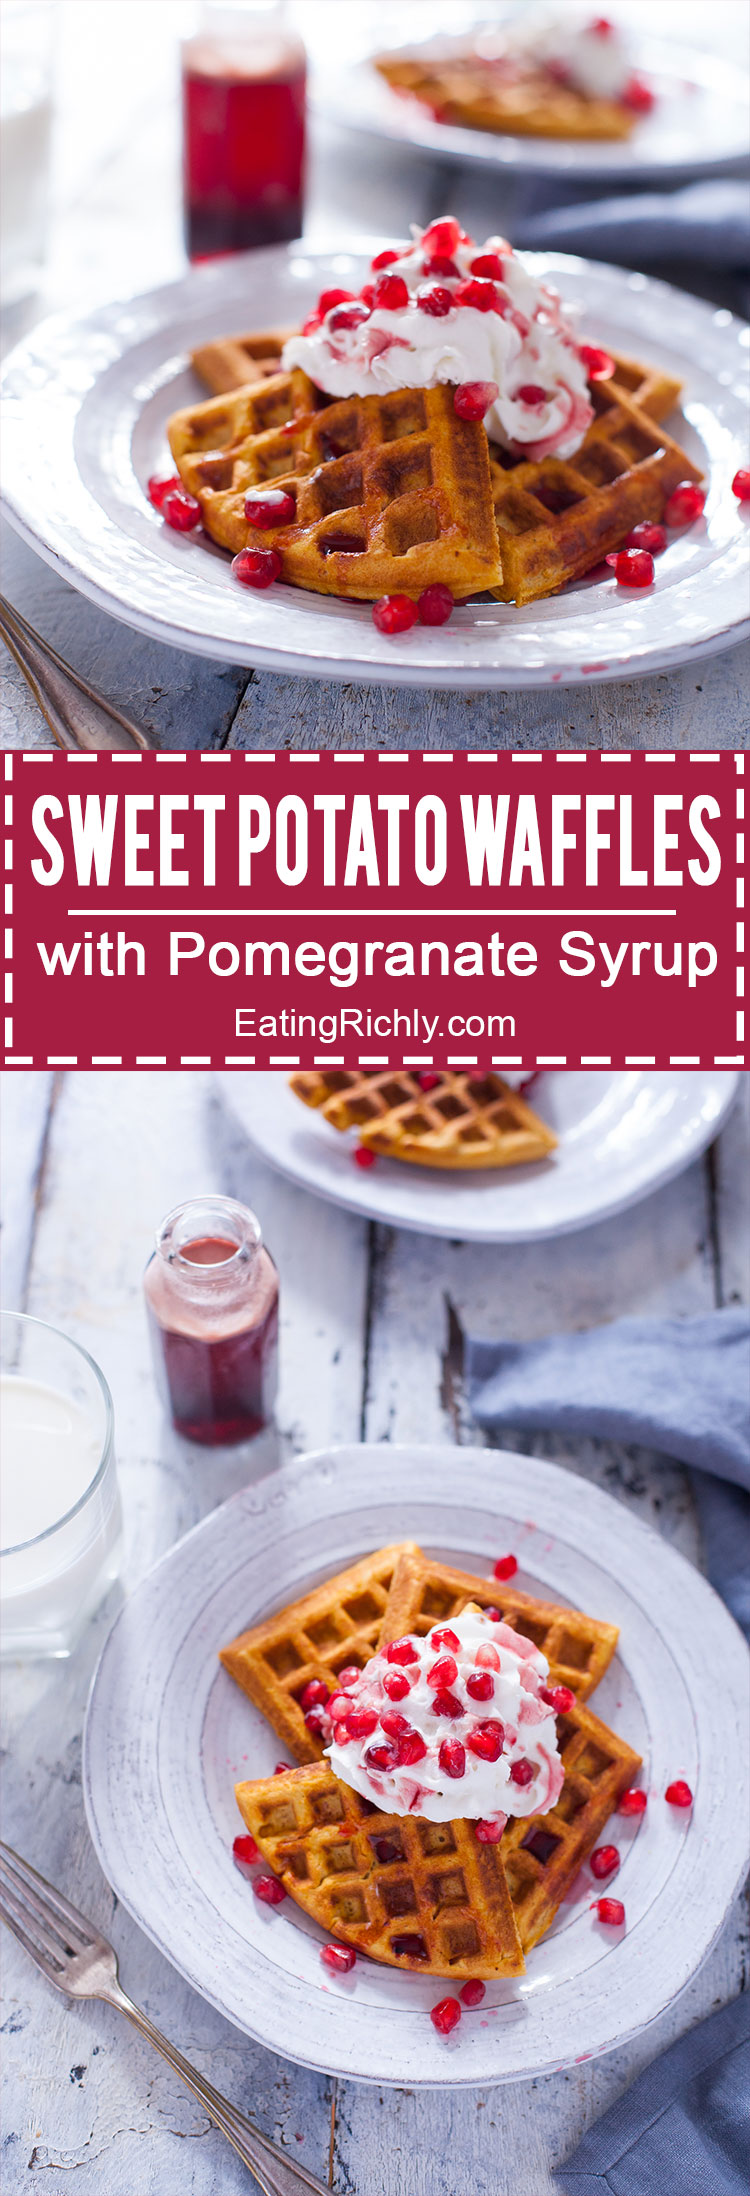 This sweet potato waffles recipe makes perfectly crisp, healthy waffles, and tops them off with an amazing sweet and tangy pomegranate syrup. From EatingRichly.com